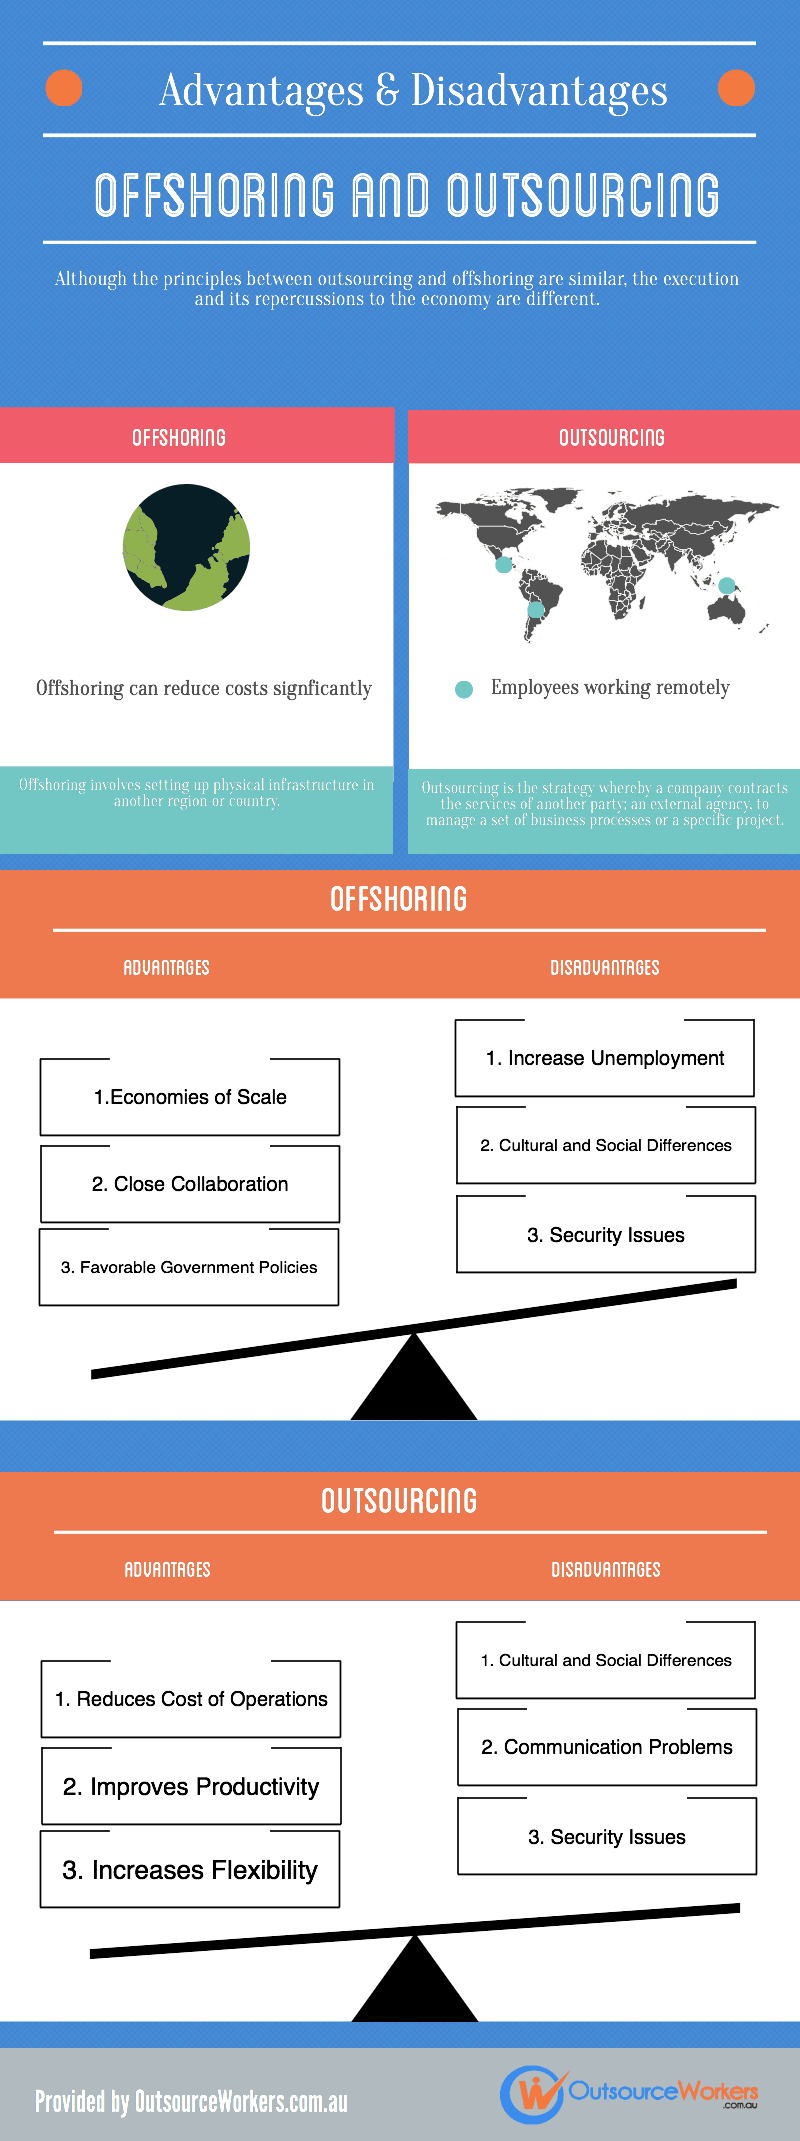 offshoring and outsourcing infographic